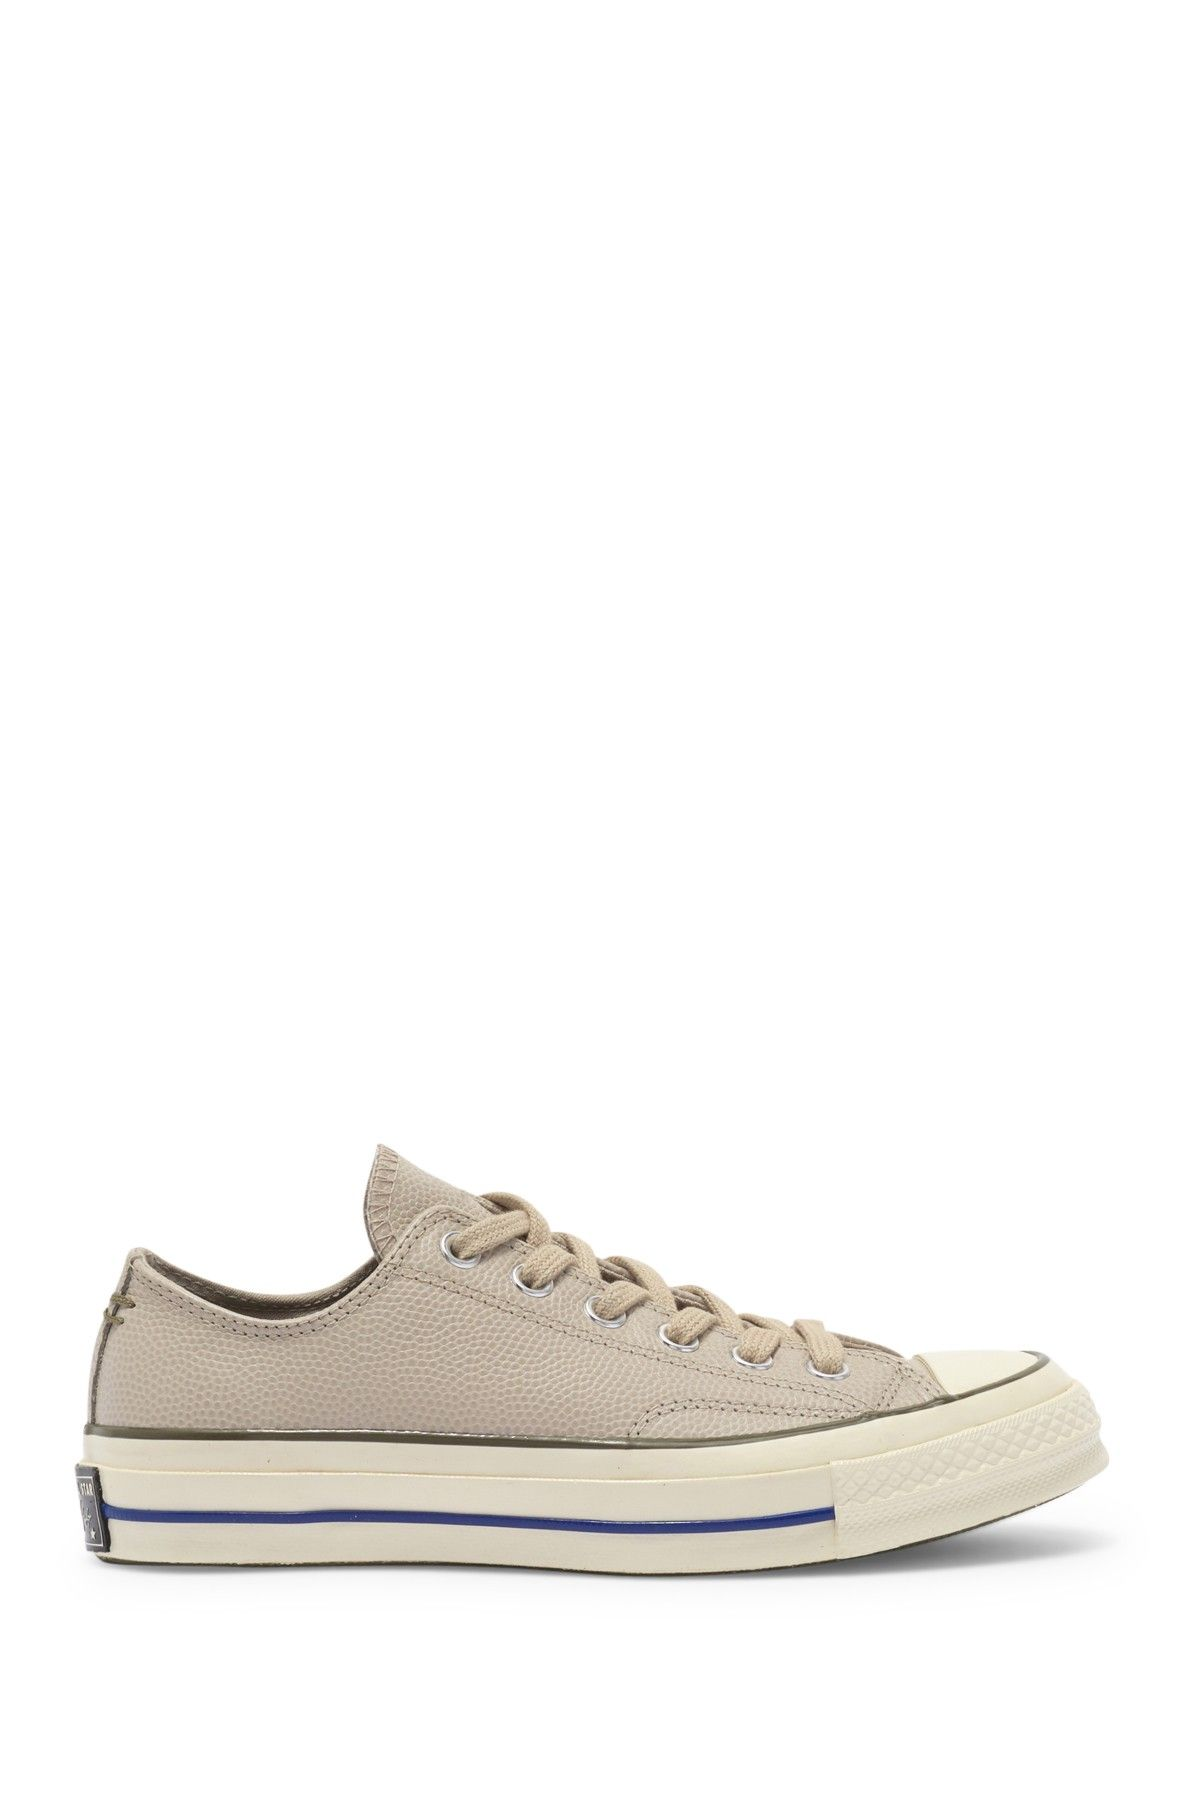 Converse | Chuck Taylor All Star 70 Ox Leather Sneaker